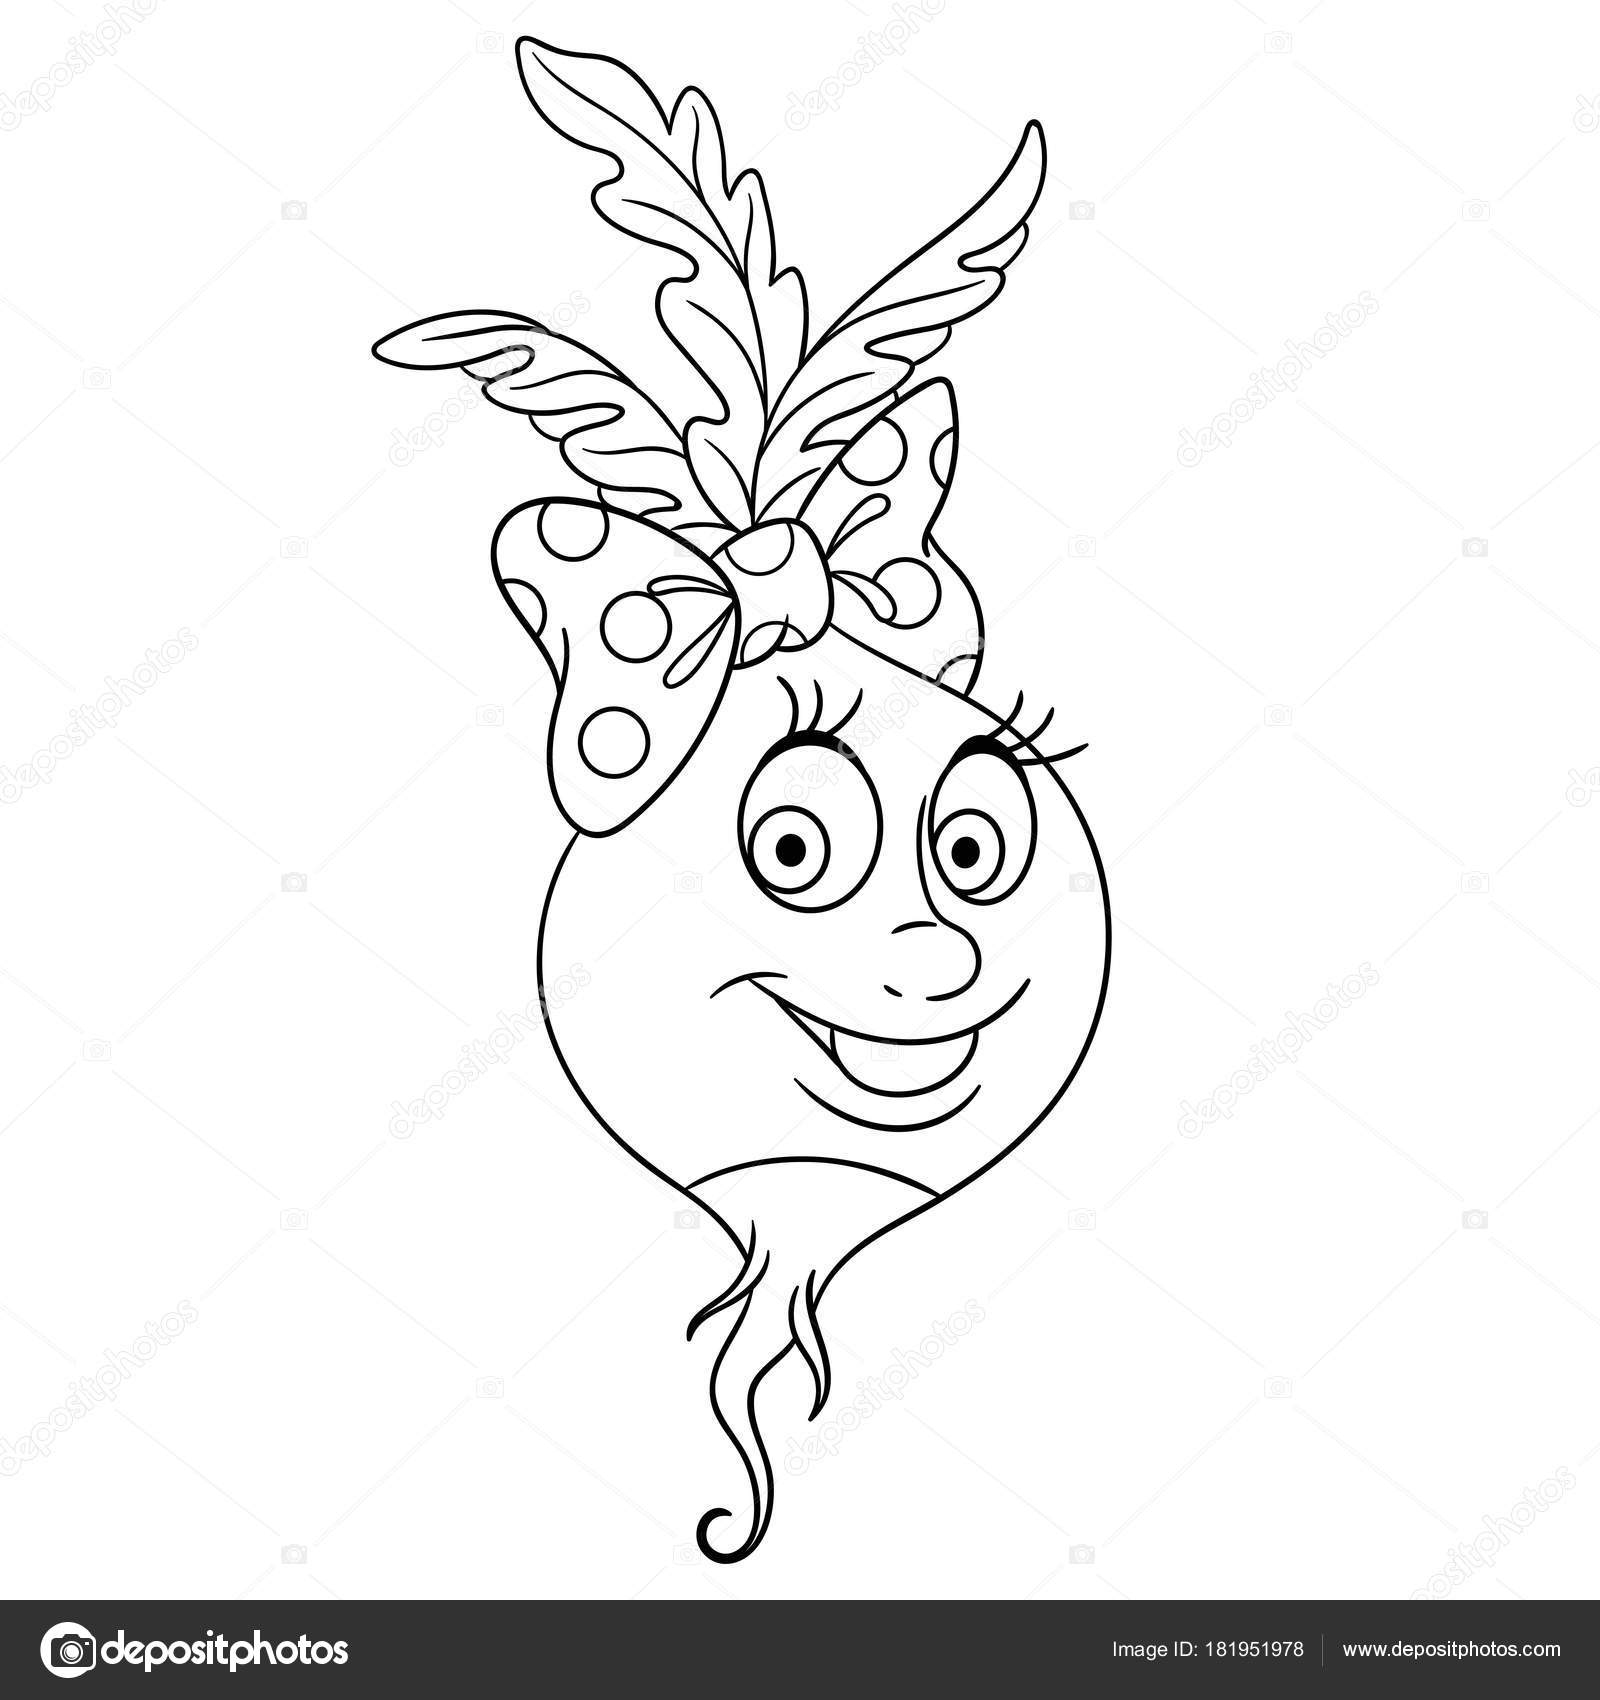 coloring page cartoon radish happy vegetable character eco food symbol stock vector